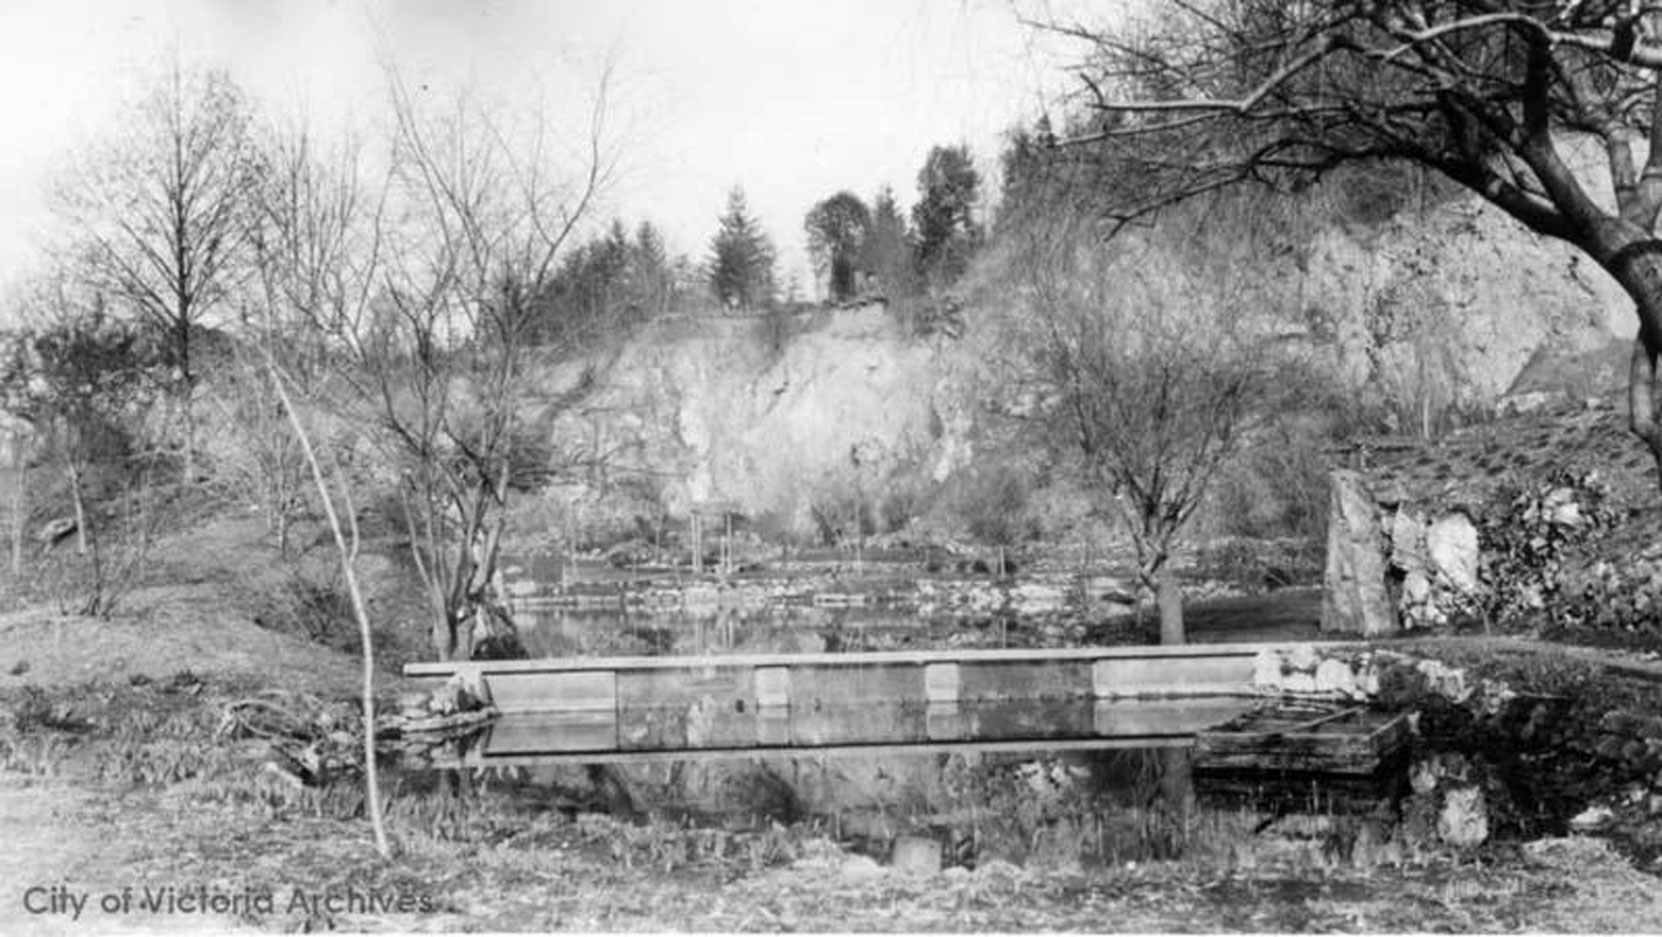 Sunken Garden Trout Pond, circa 1910 (City of Victoria Archives photo M05819)